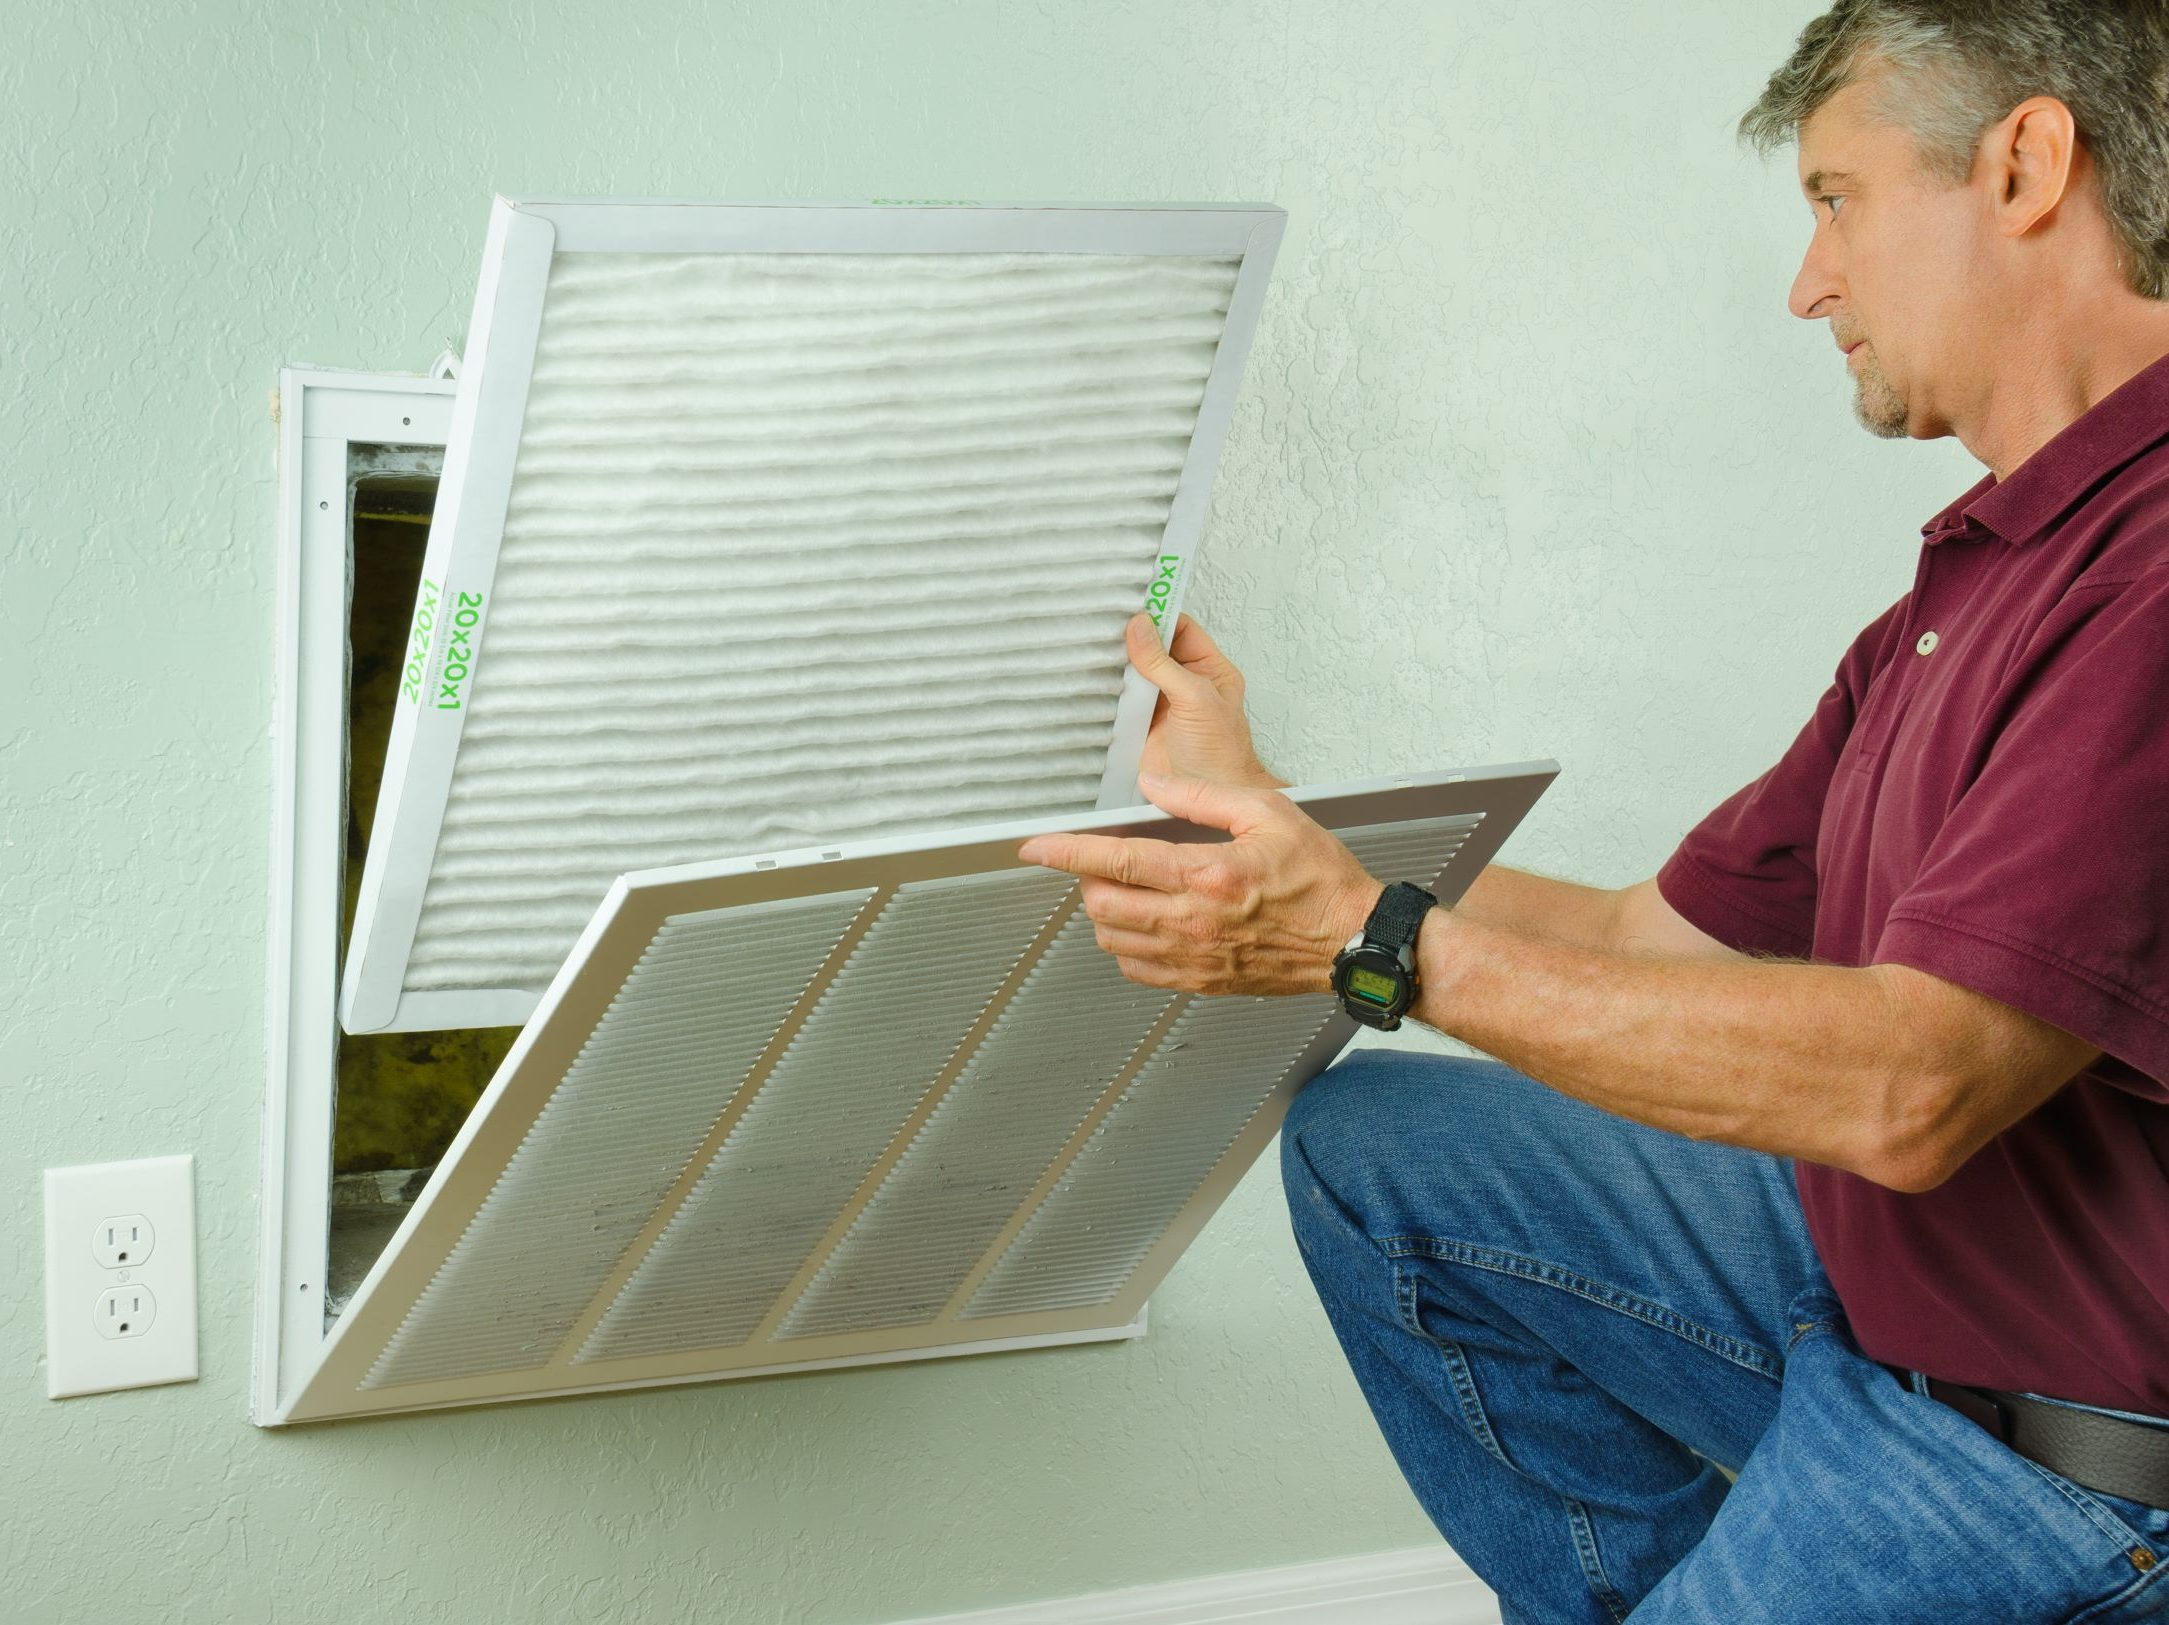 air filter cleaning company